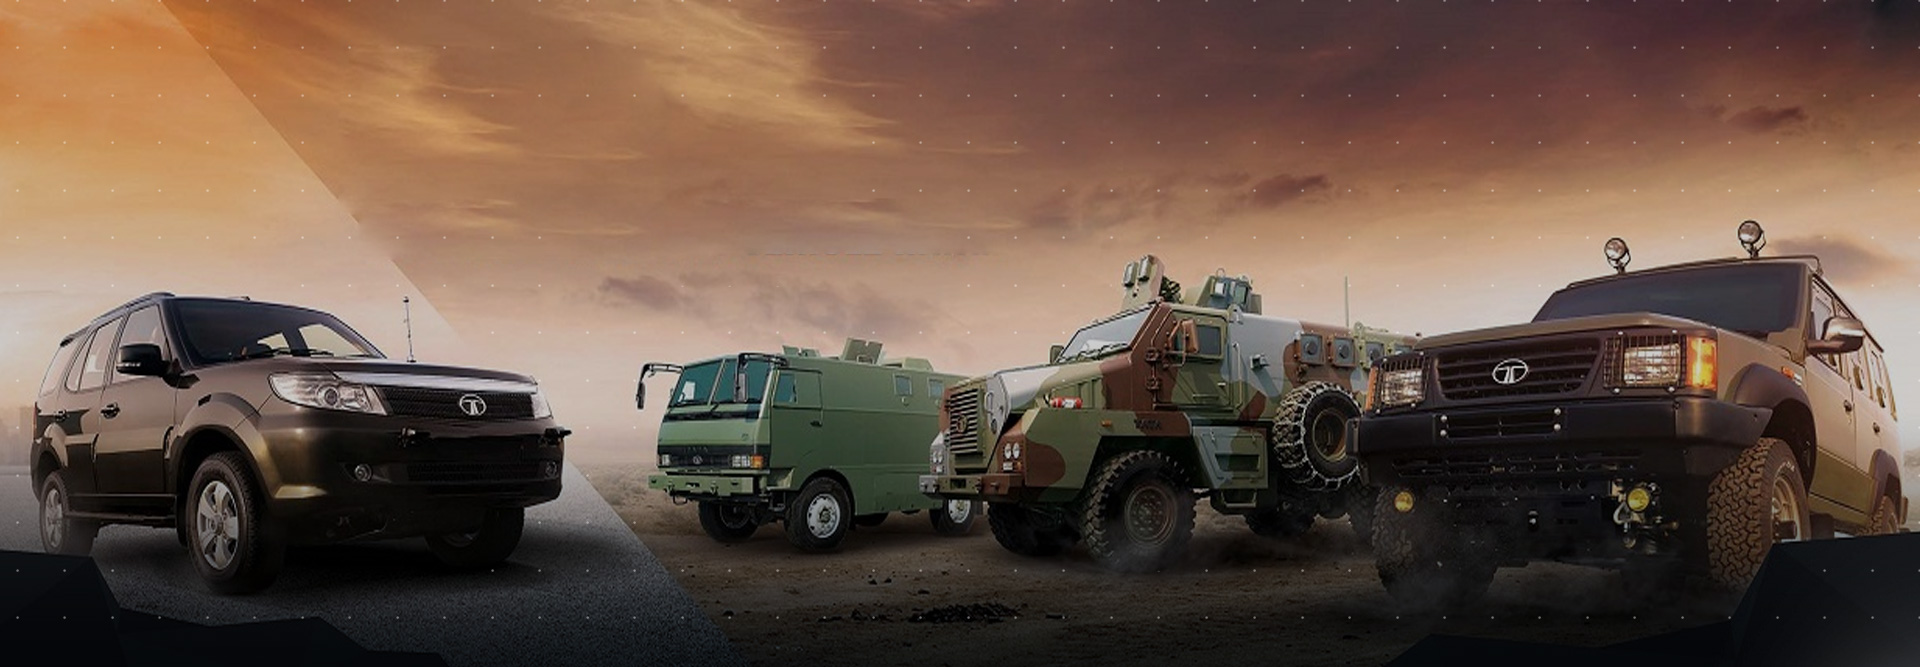 Tata Motors - Best Defence Vehicle Manufacturers In India